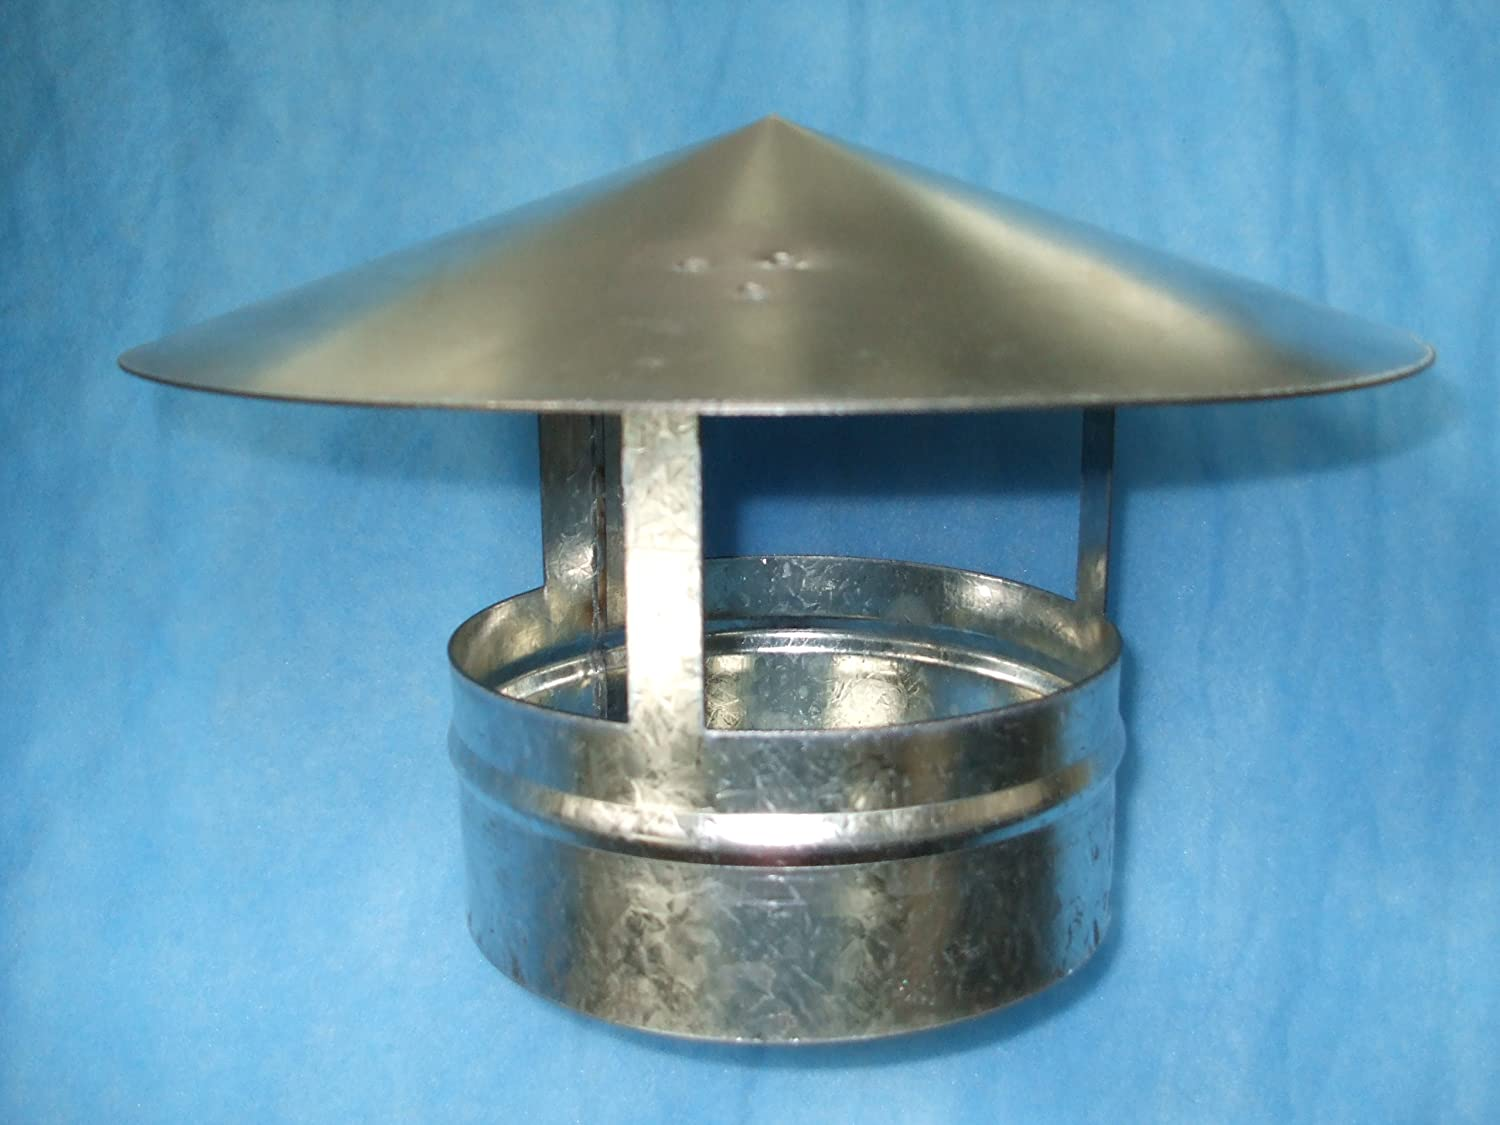 Roof Cowls Amp Roof Vent Cowl Roof Vent Cowl Suppliers And